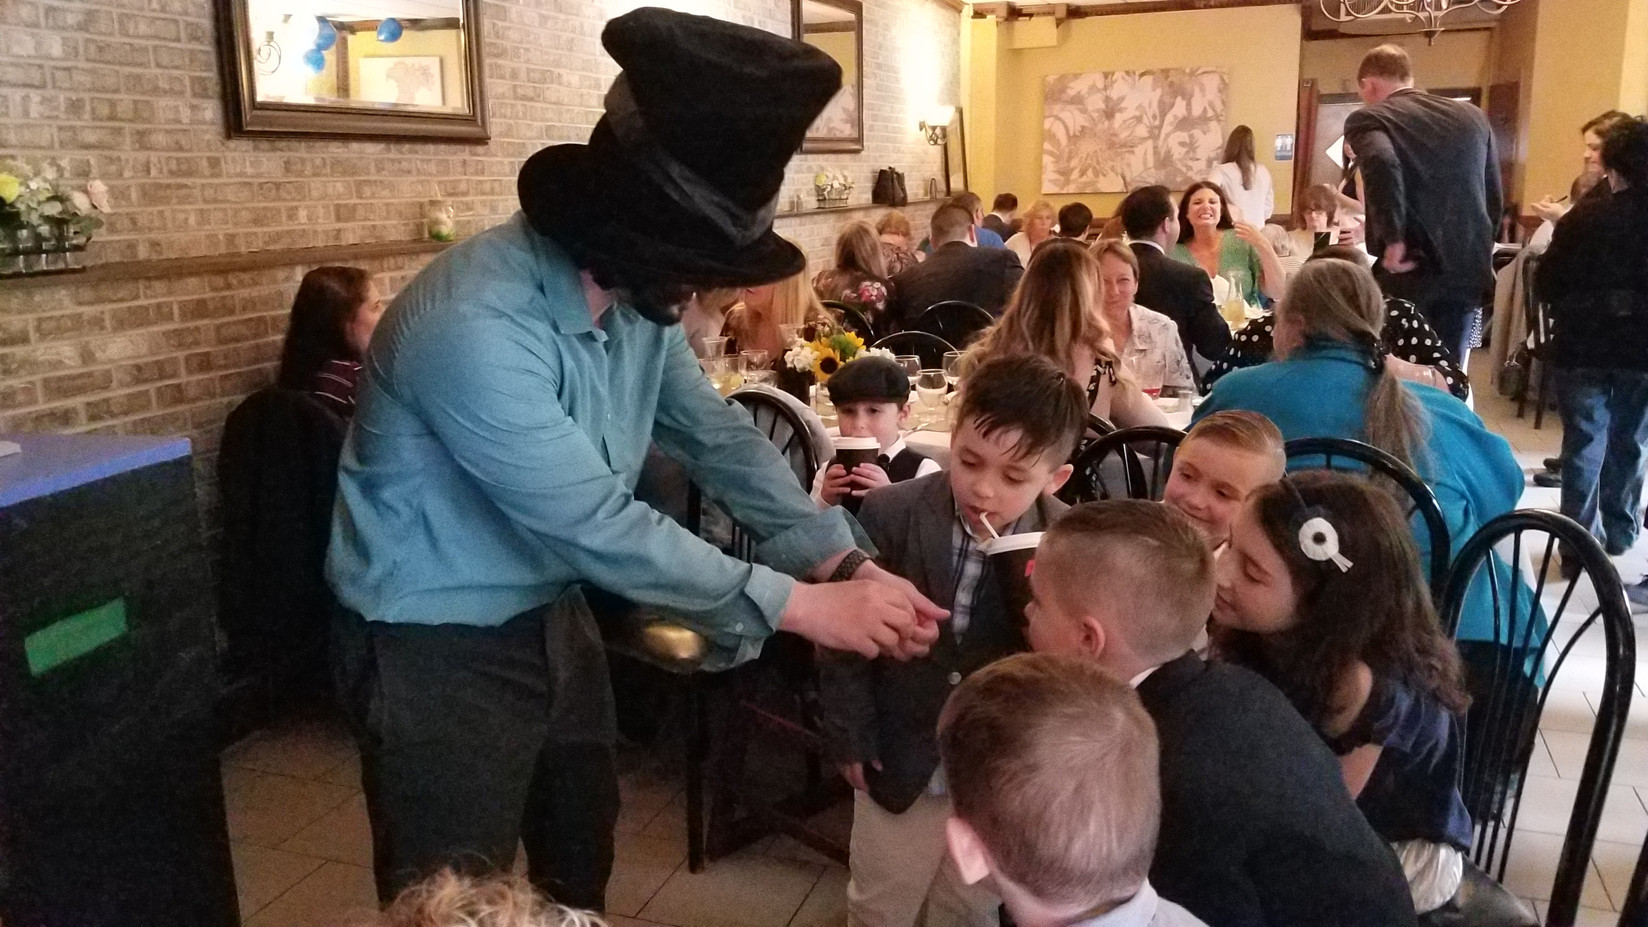 Magician-With-Children-At-Party.jpg